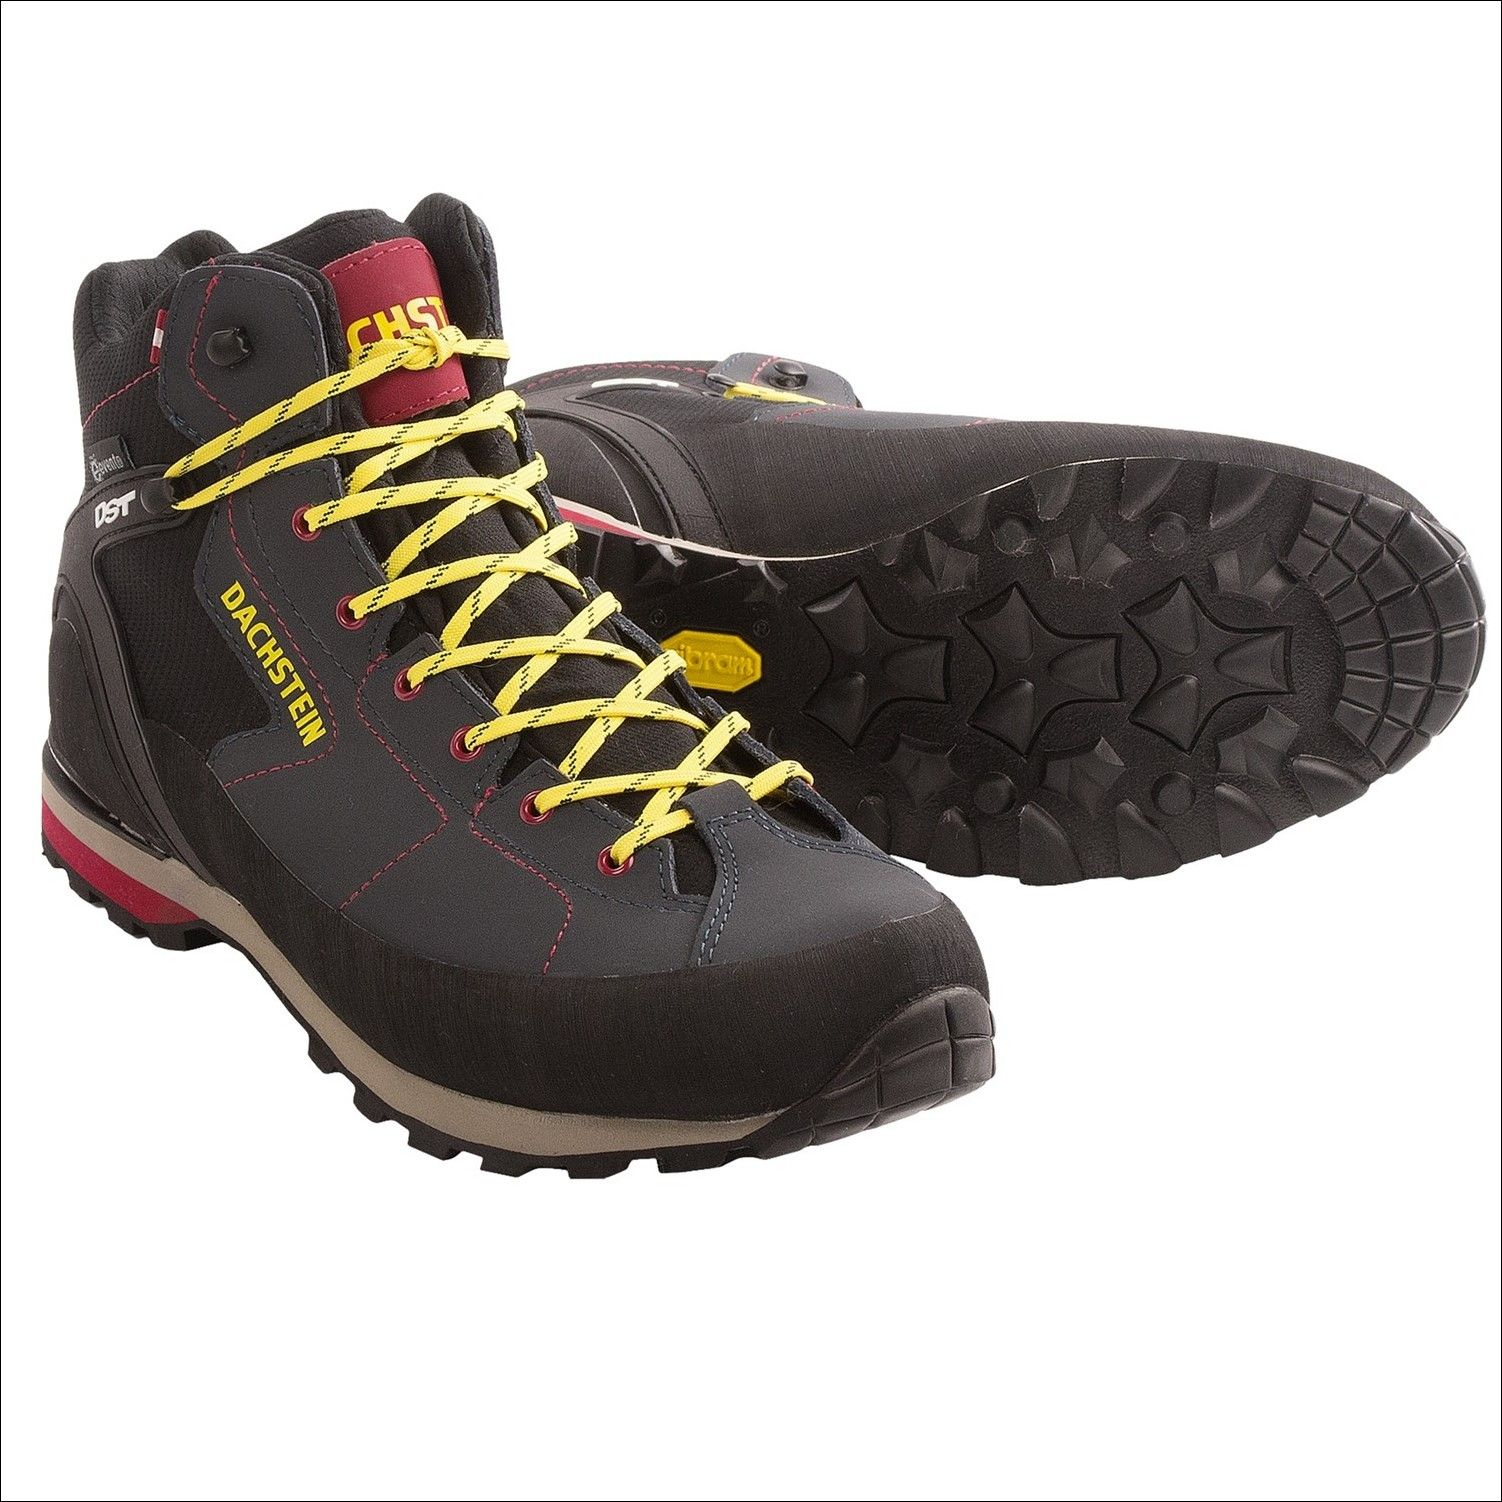 d8dbae16cdb Dachstein-DST Hiking Boots | my shoes | Hiking boots, Waterproof ...